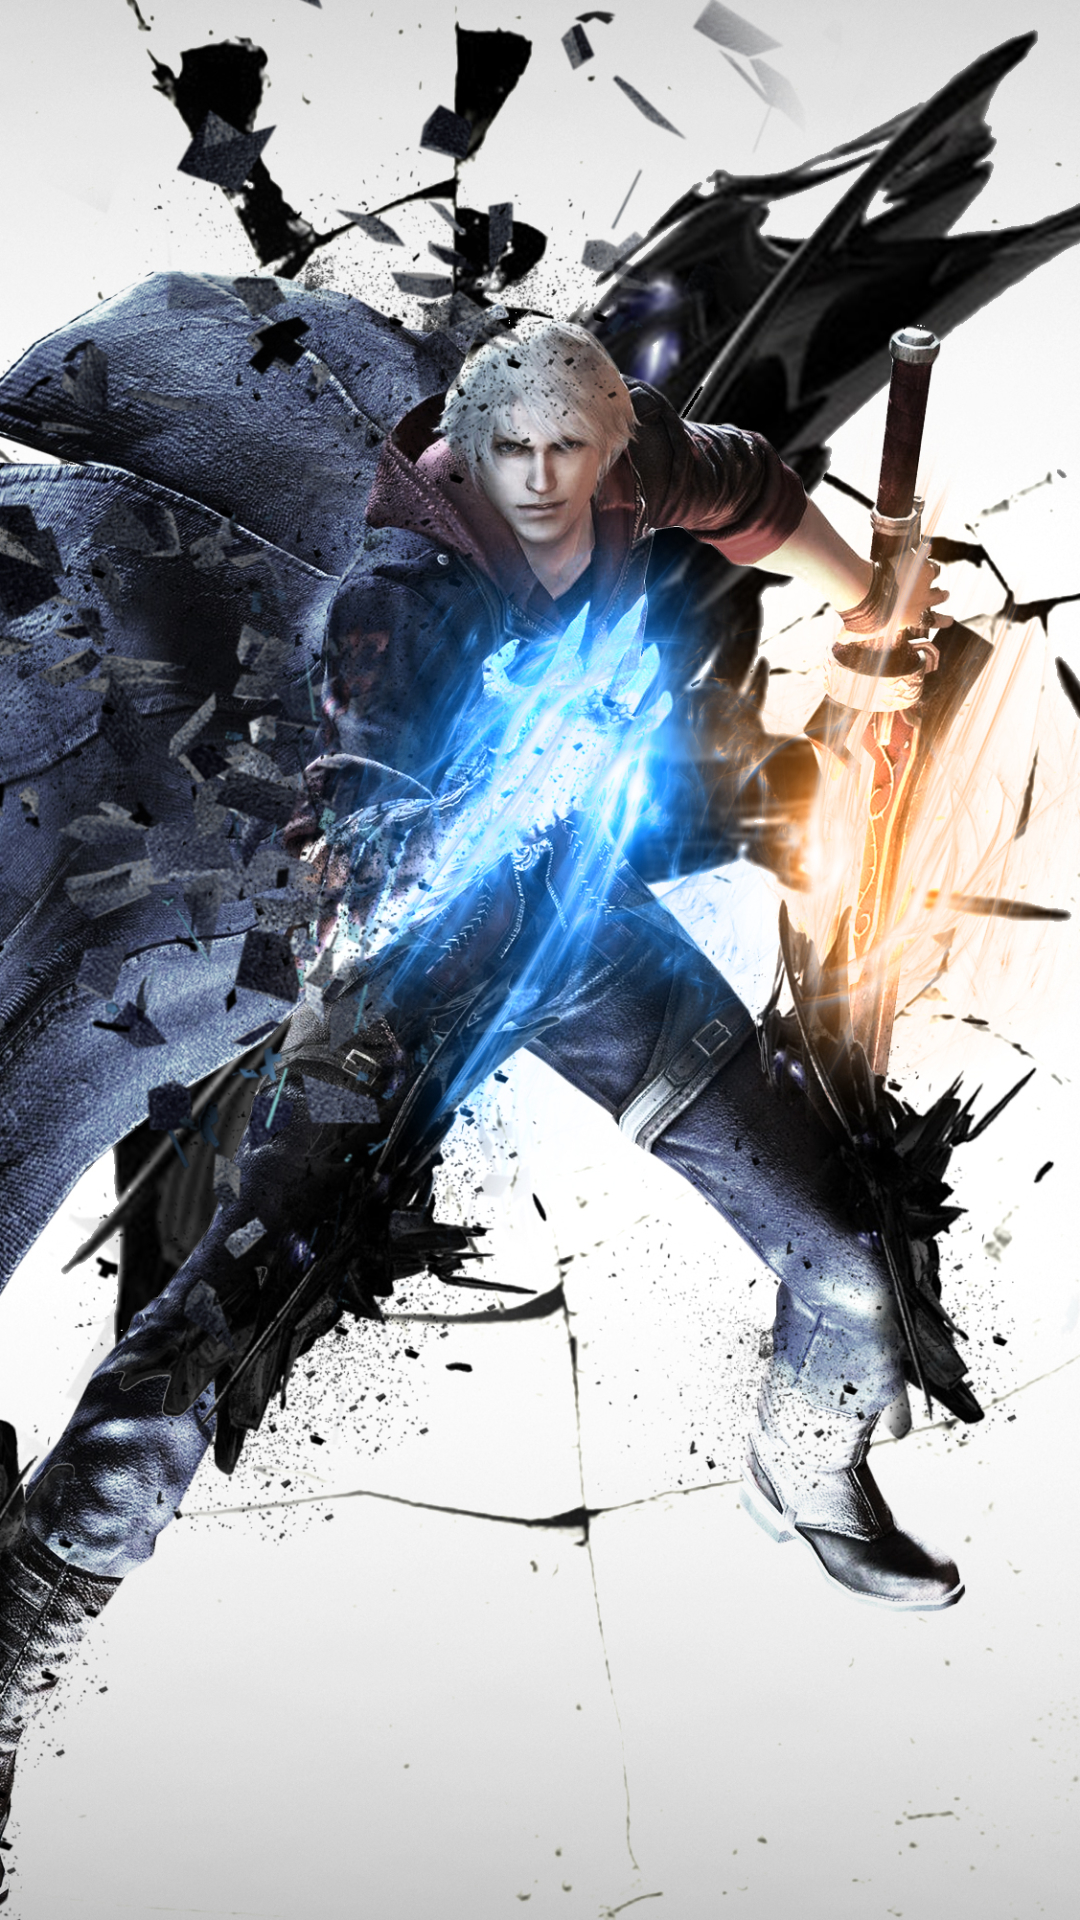 video game/devil may cry 4 (1080x1920) wallpaper id: 697182 - mobile